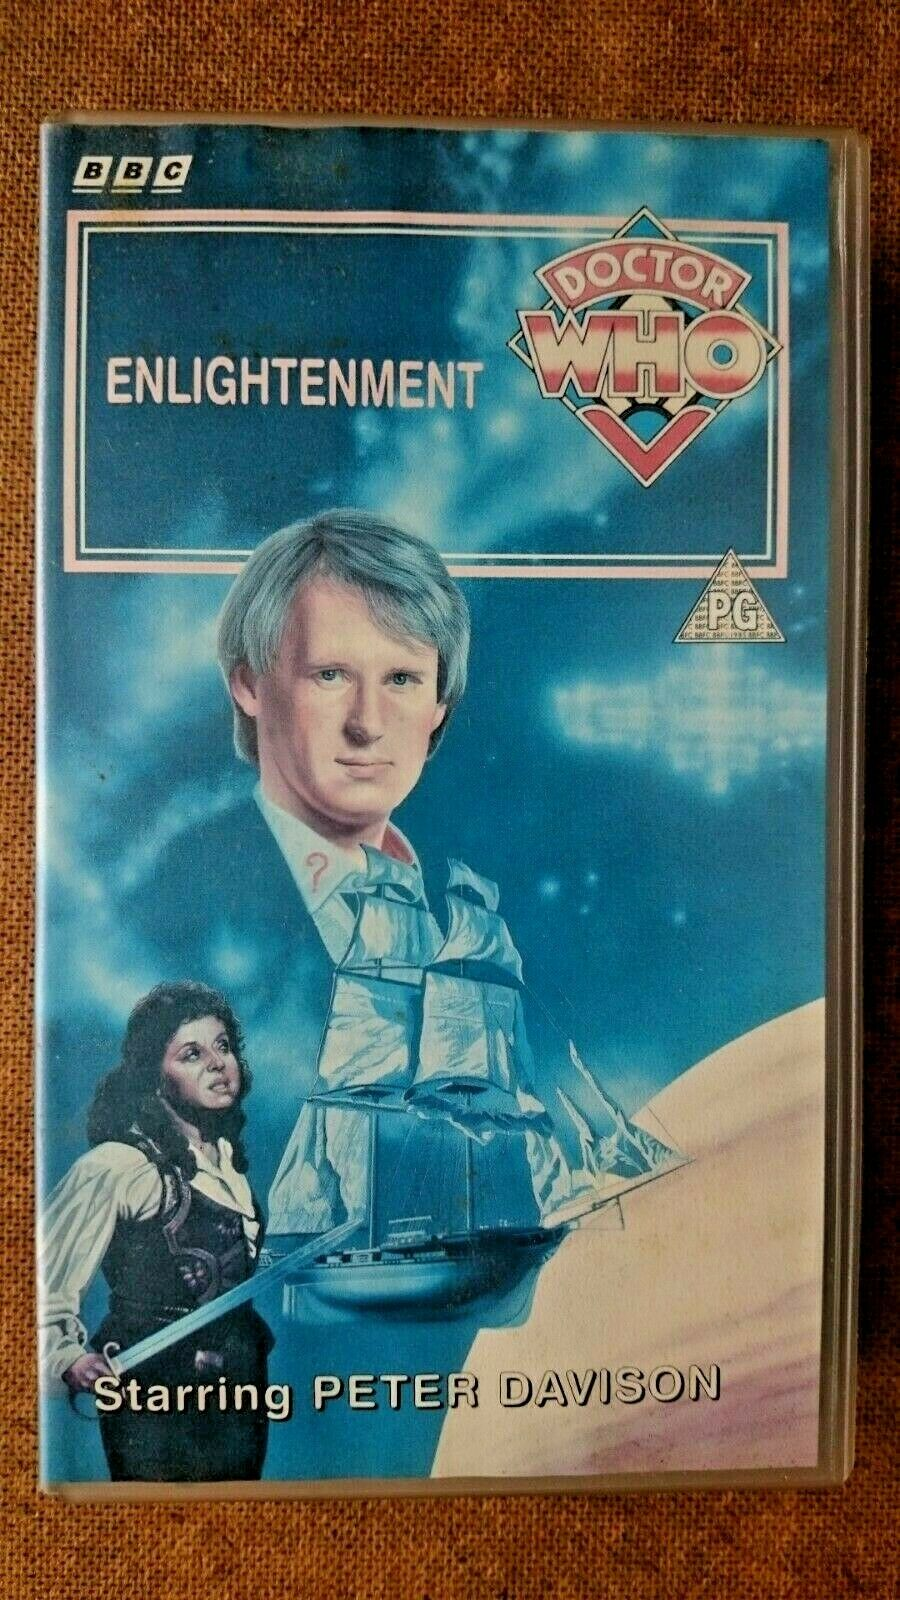 Doctor Who Enlightenment  (VHS)